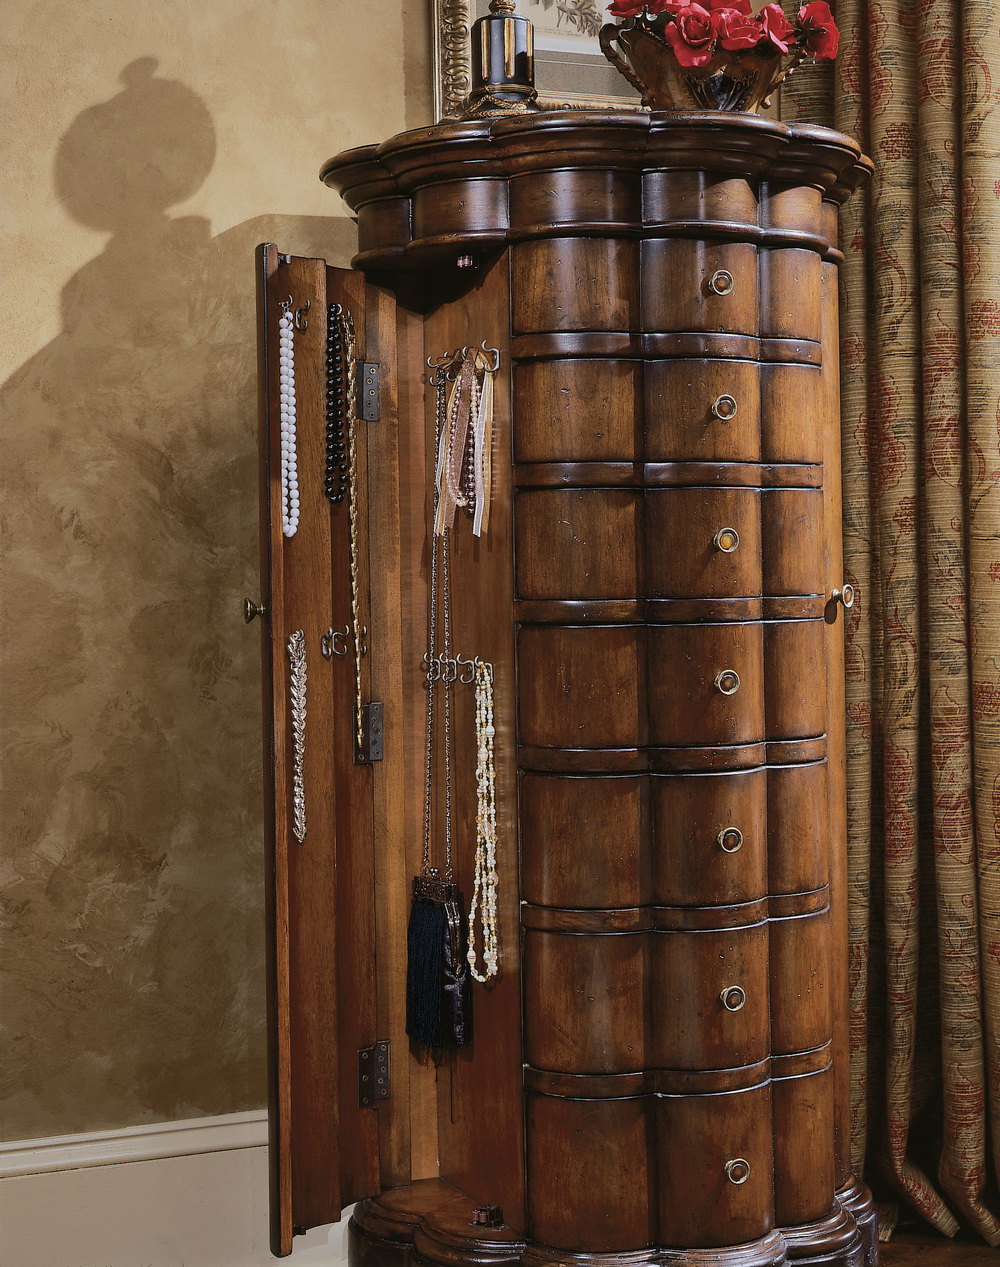 Hooker Furniture - Shaped Jewelry Armoire